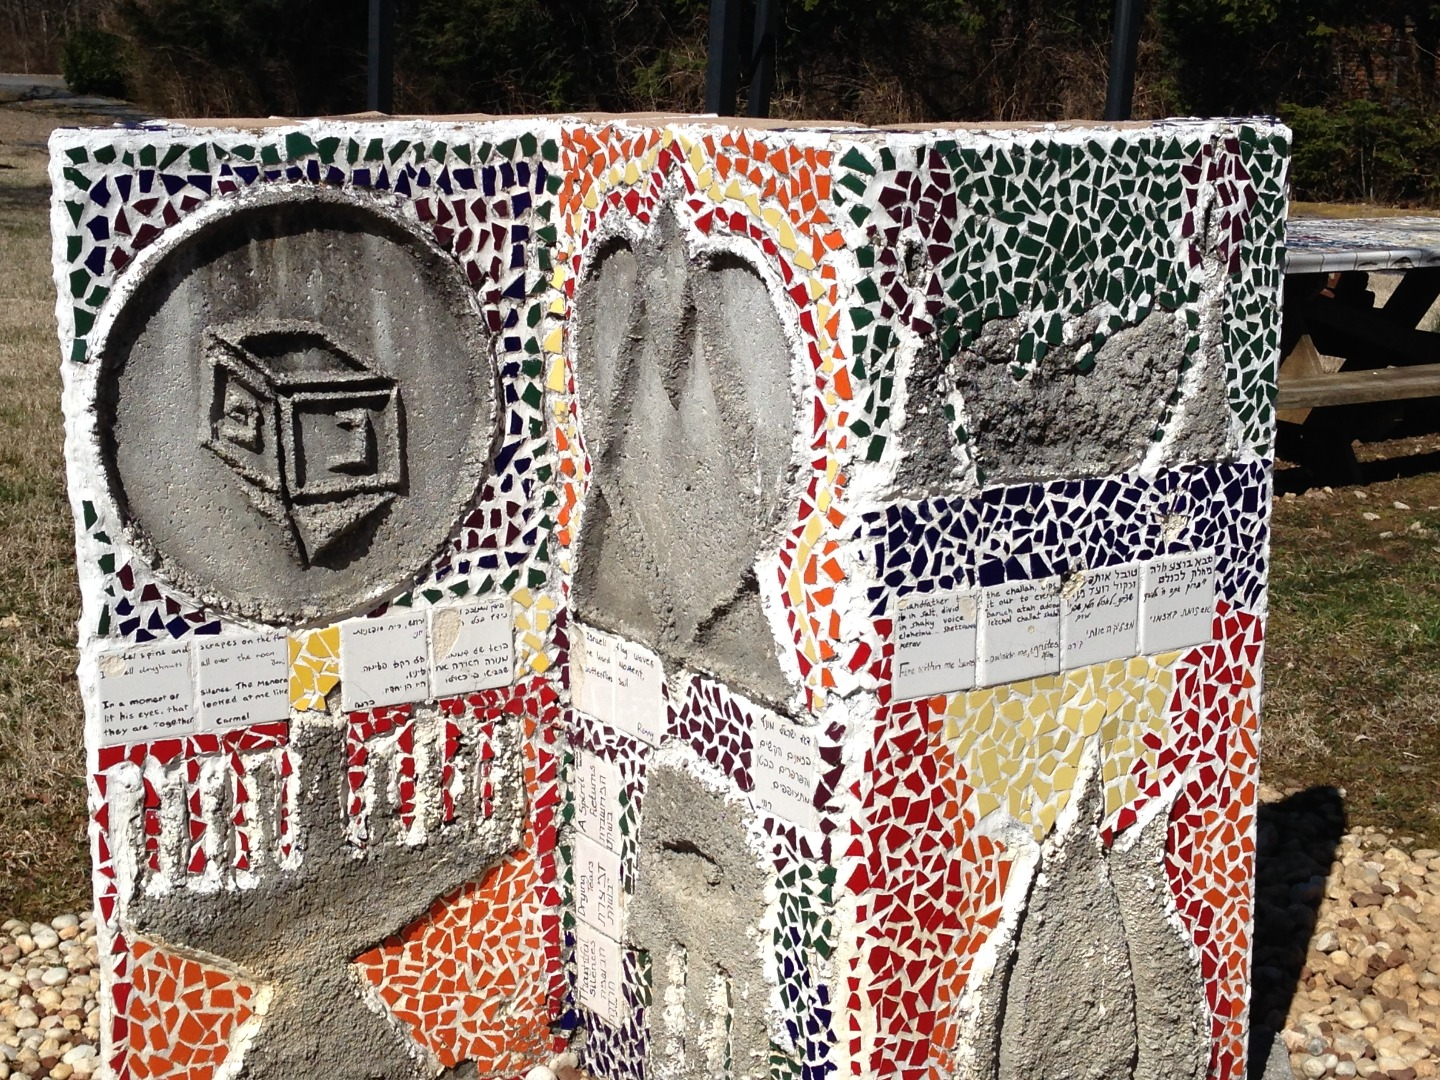 Camp Tikkun Olam Sculpture at AJCC